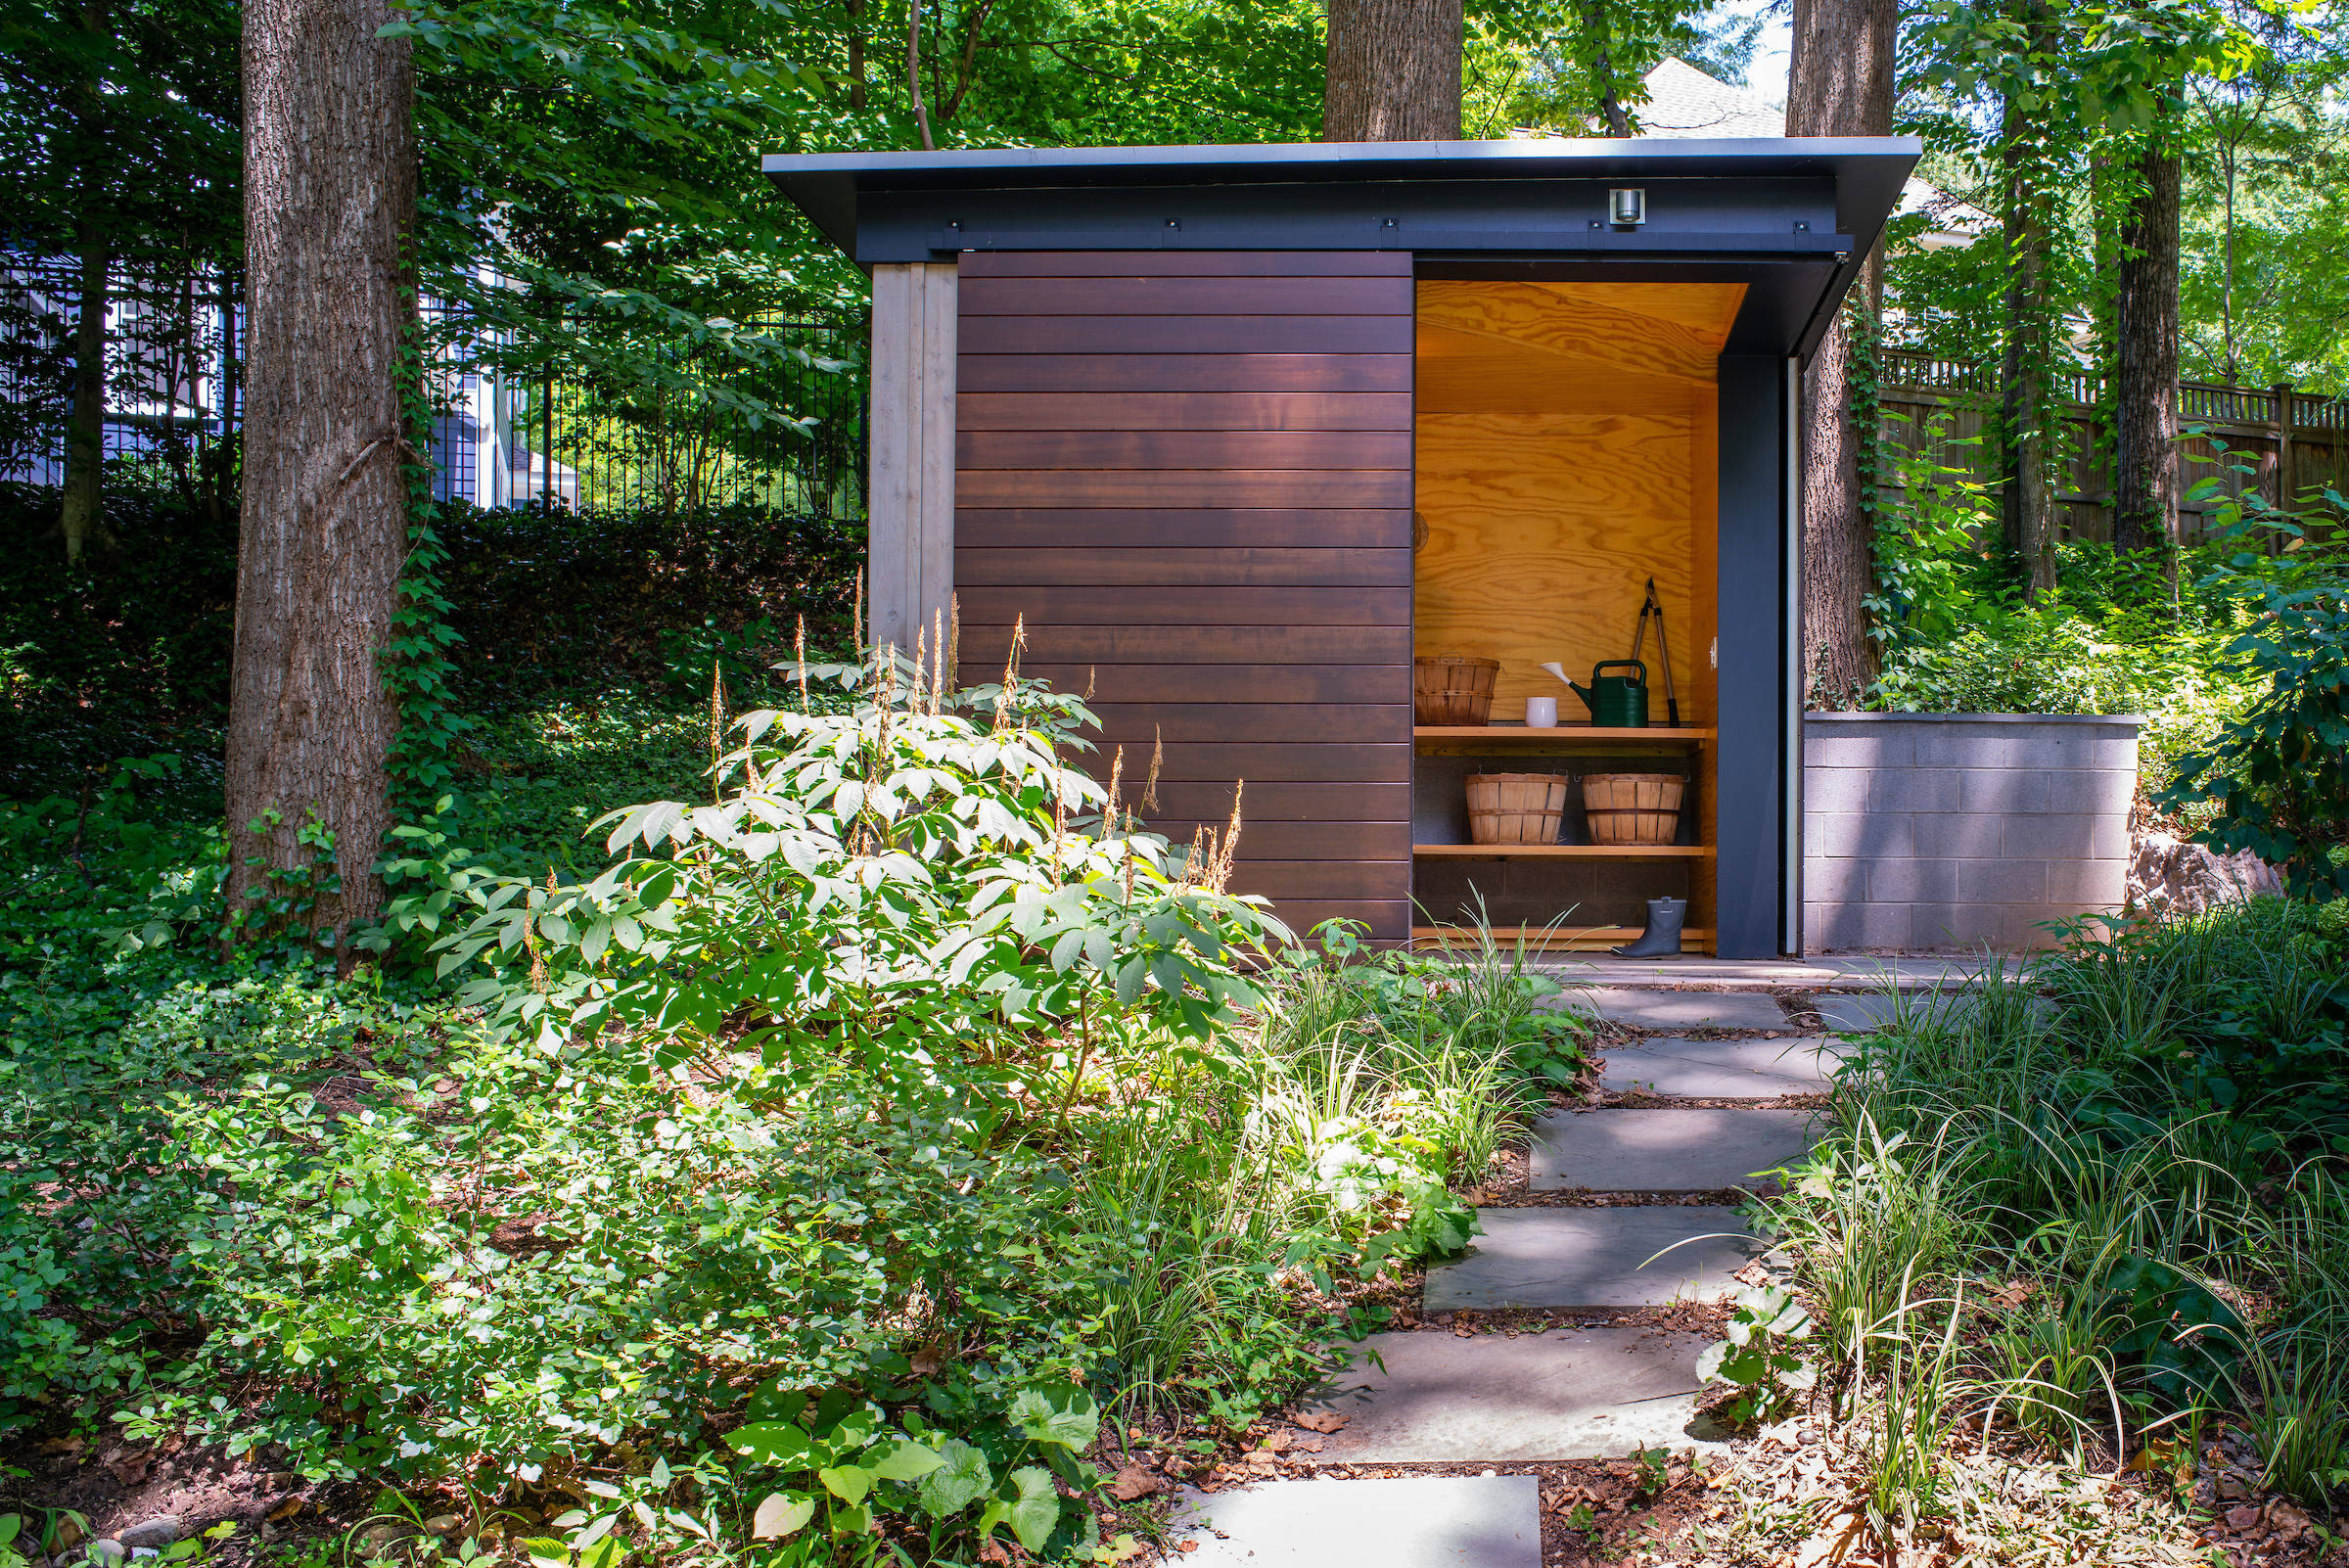 75 Beautiful Modern Garage And Shed Pictures Ideas February 2021 Houzz